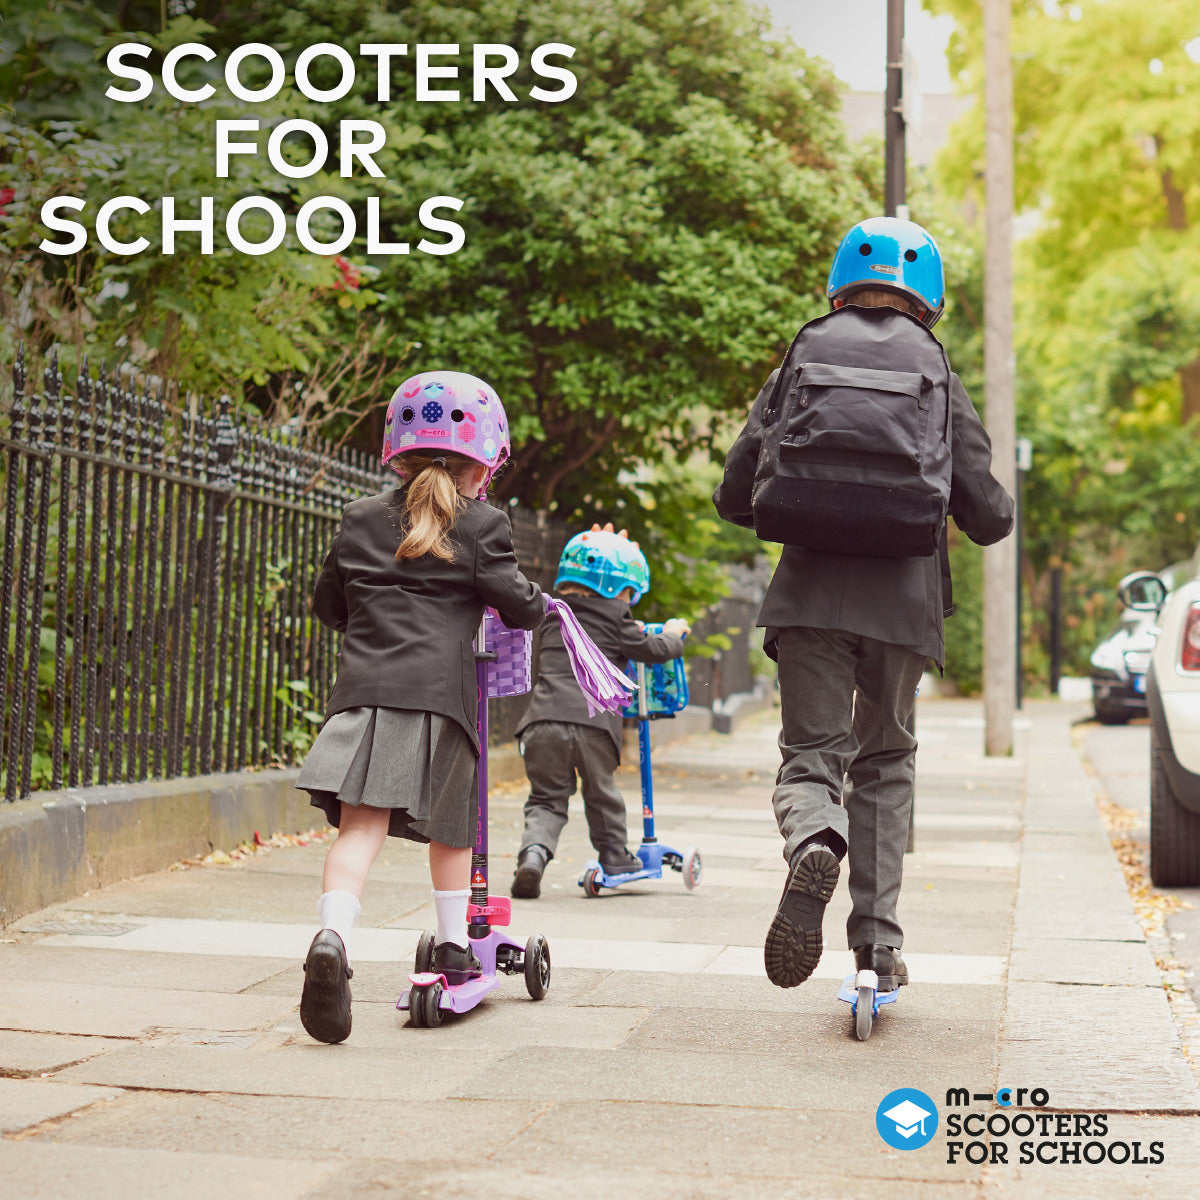 MICRO SCOOTERS FOR SCHOOLS